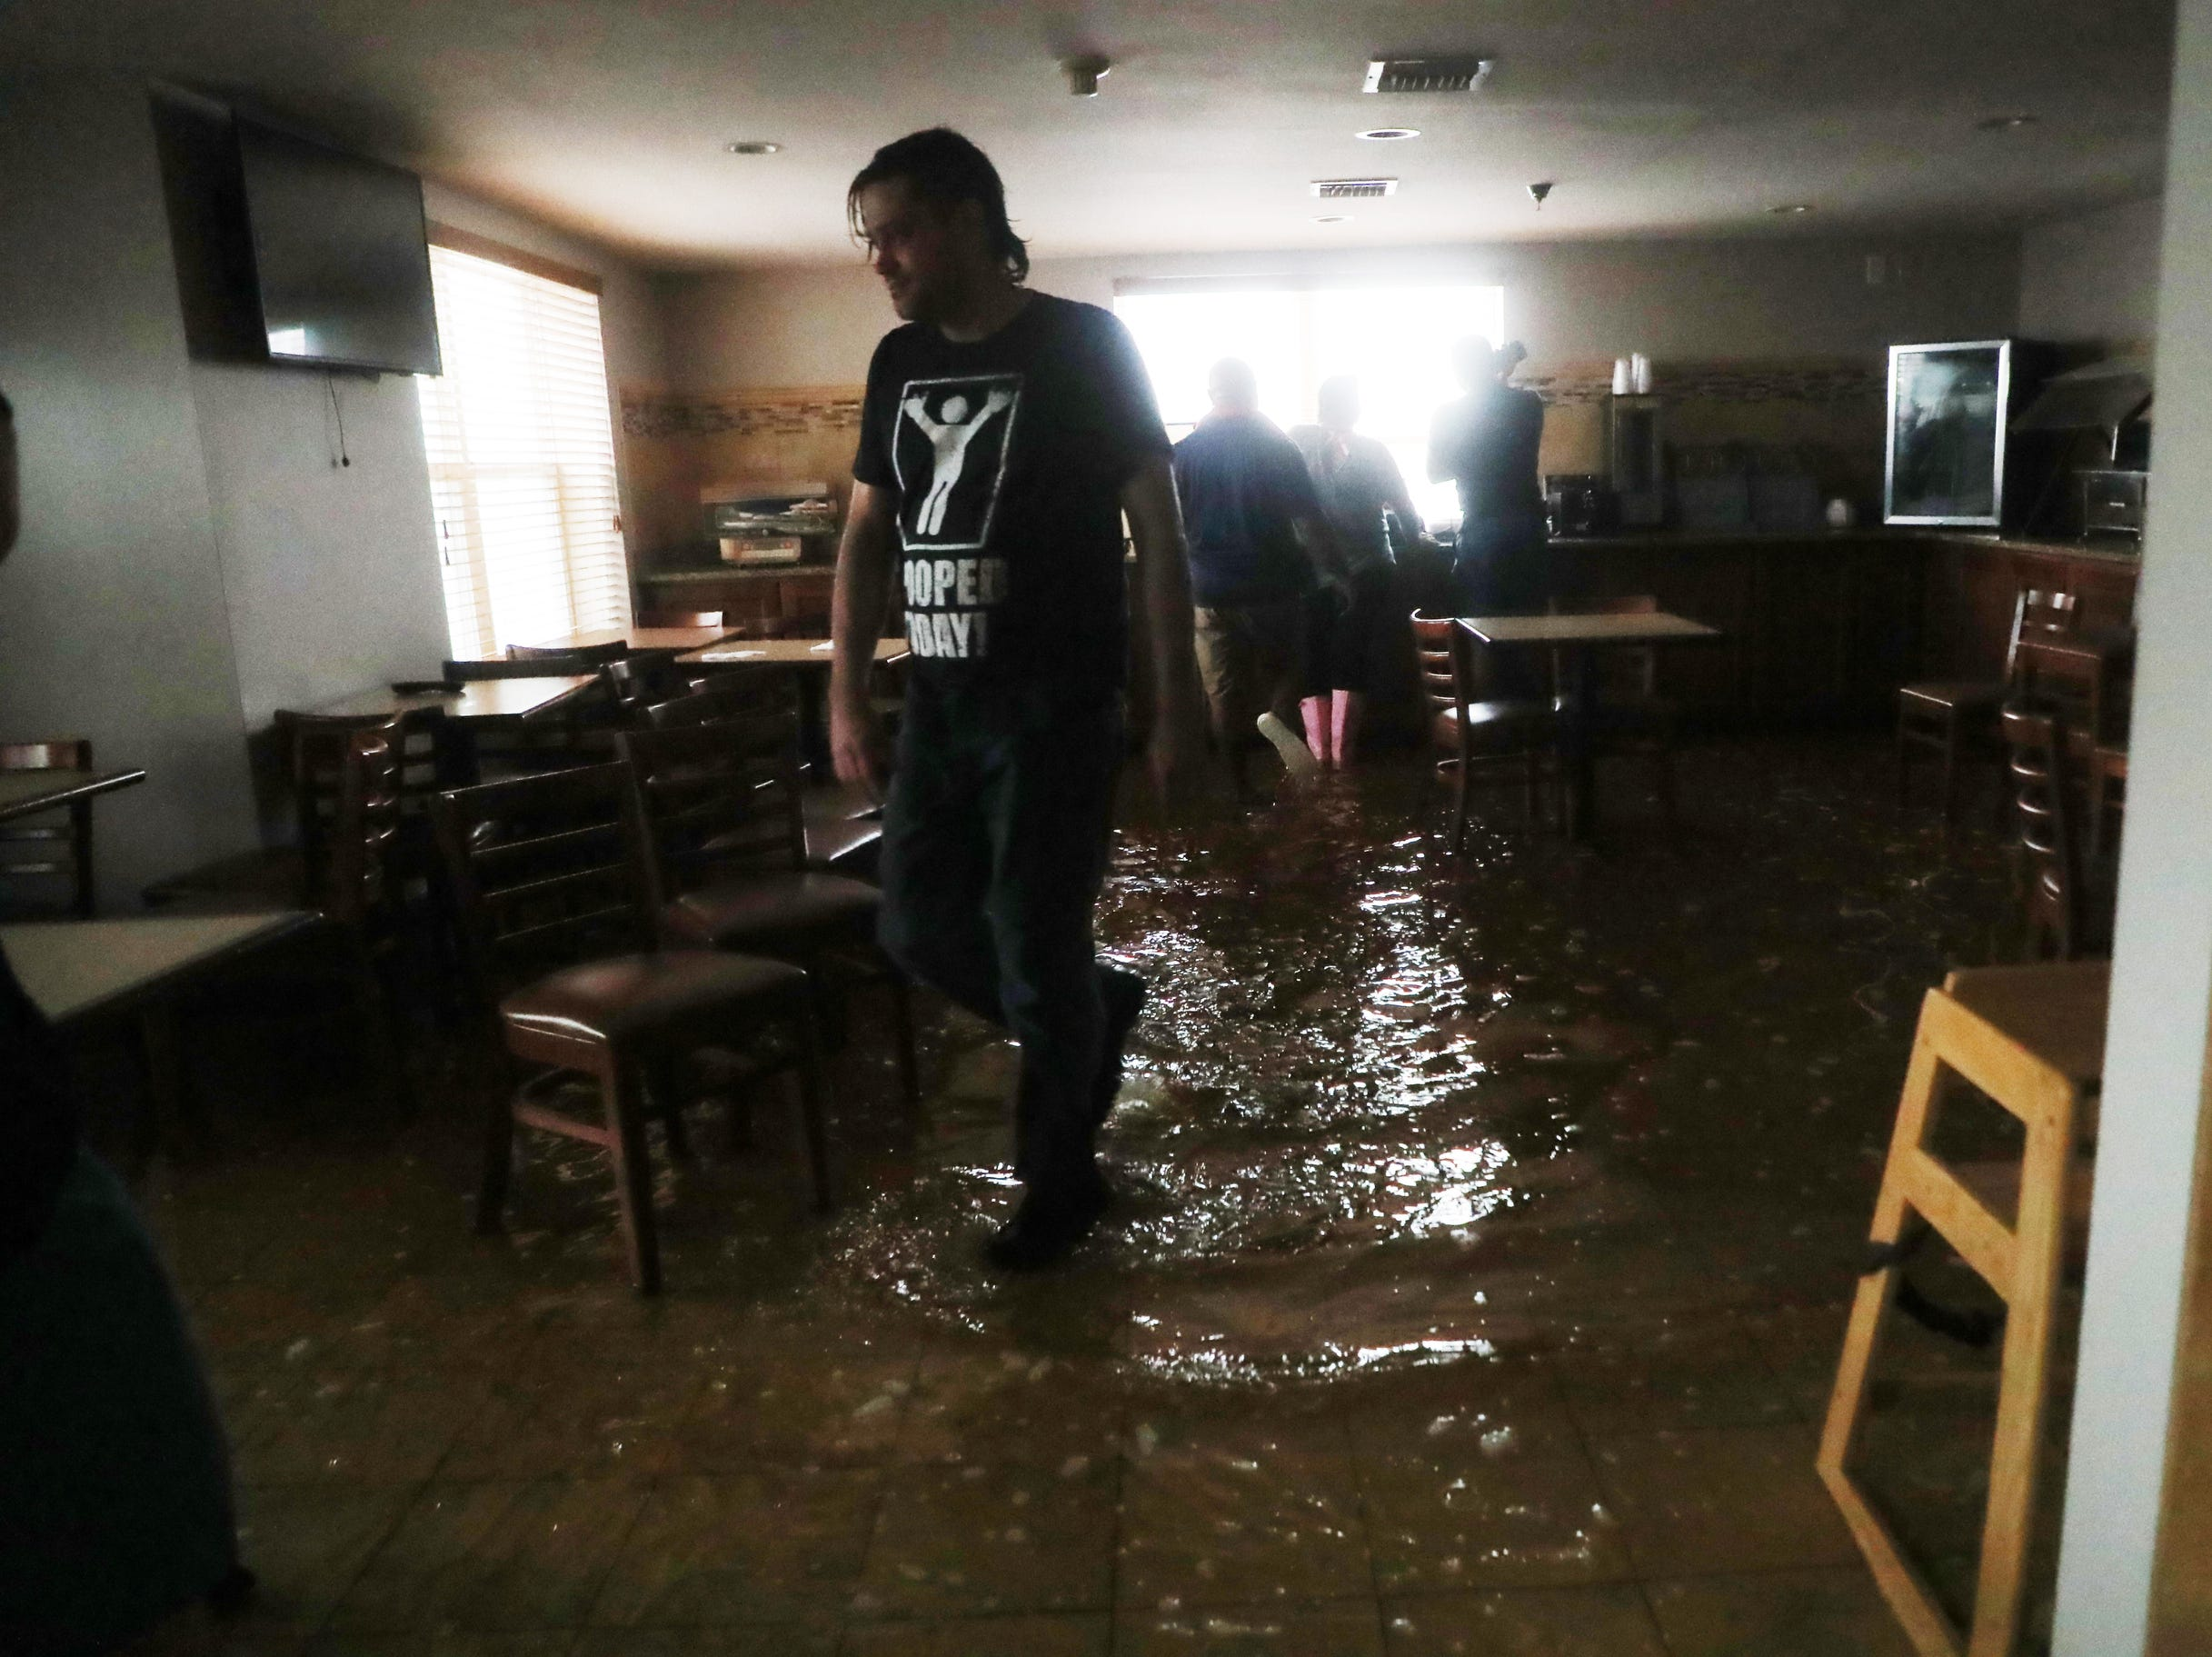 Jacob Merritt walks through a flooded hotel cafeteria at the Country Inn in Panama City, Fla.